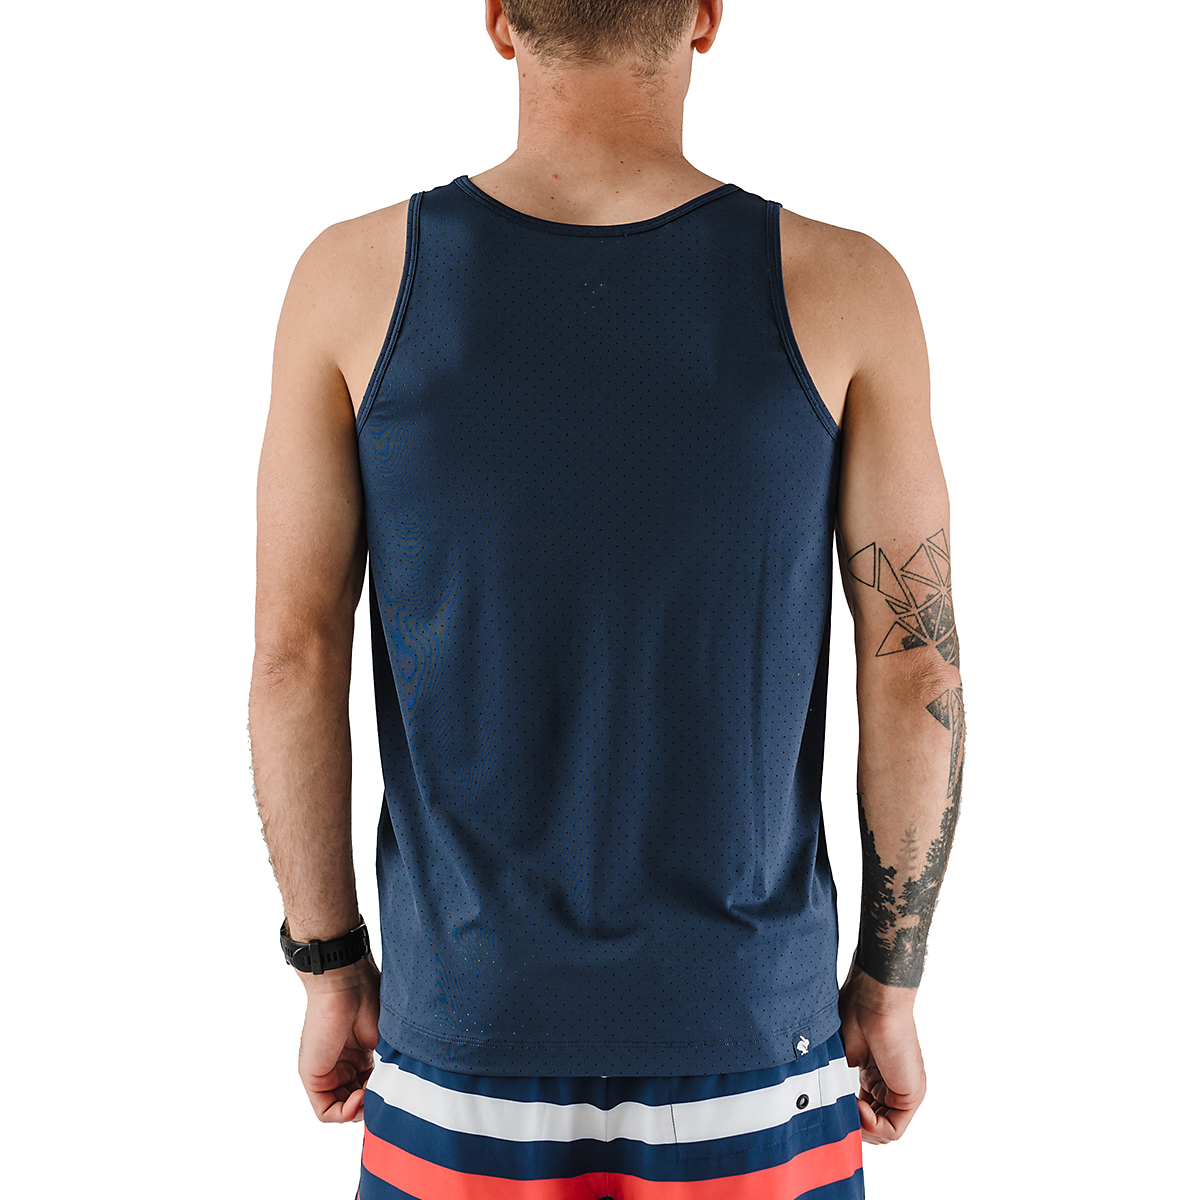 Men's Rabbit Welcome To The Gun Show Perf Tank, , large, image 2